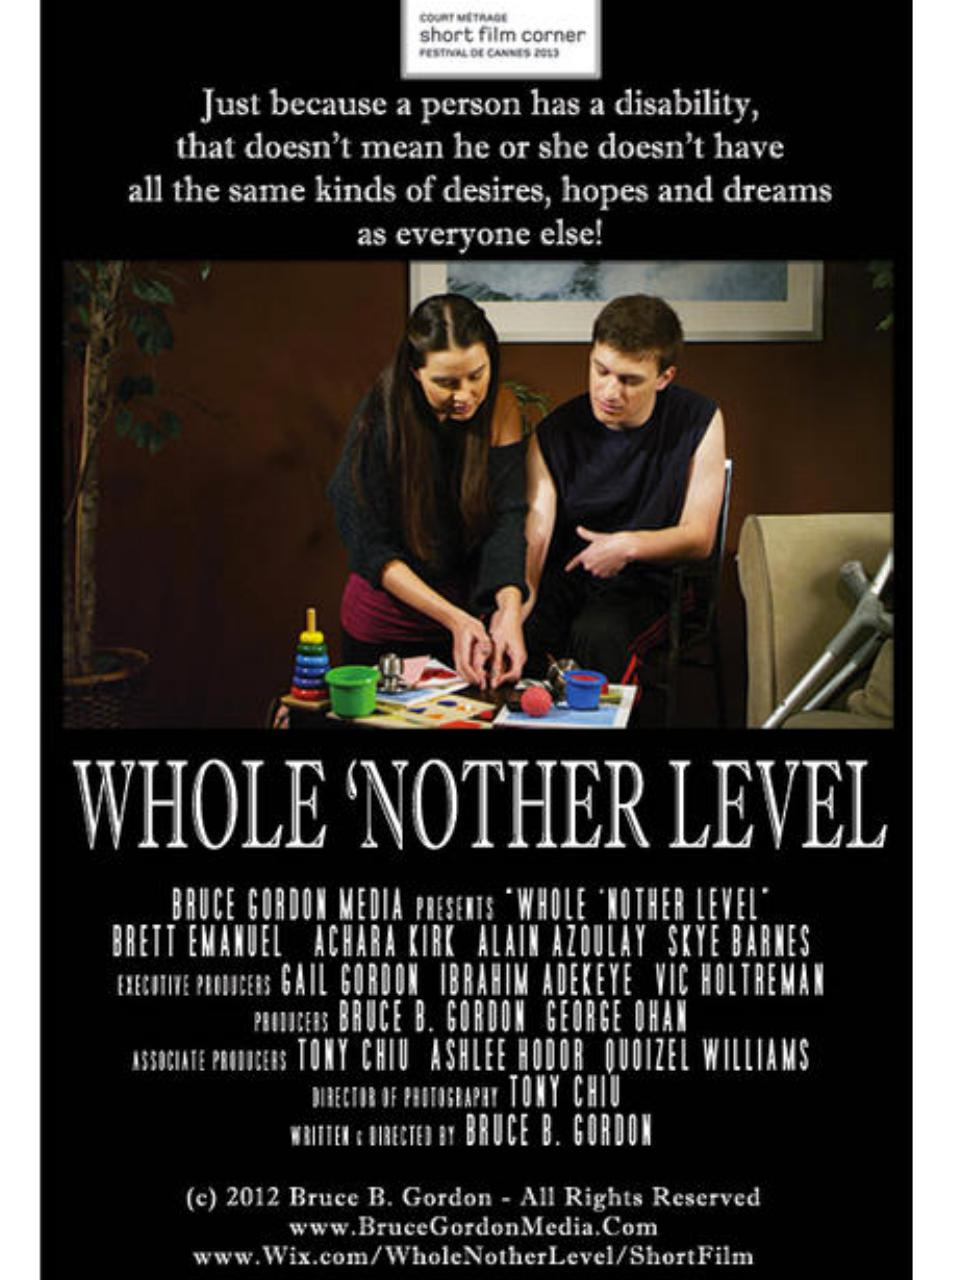 Press Kit - Whole 'Nother Level - Short Film Corner.pdf - page 1/26